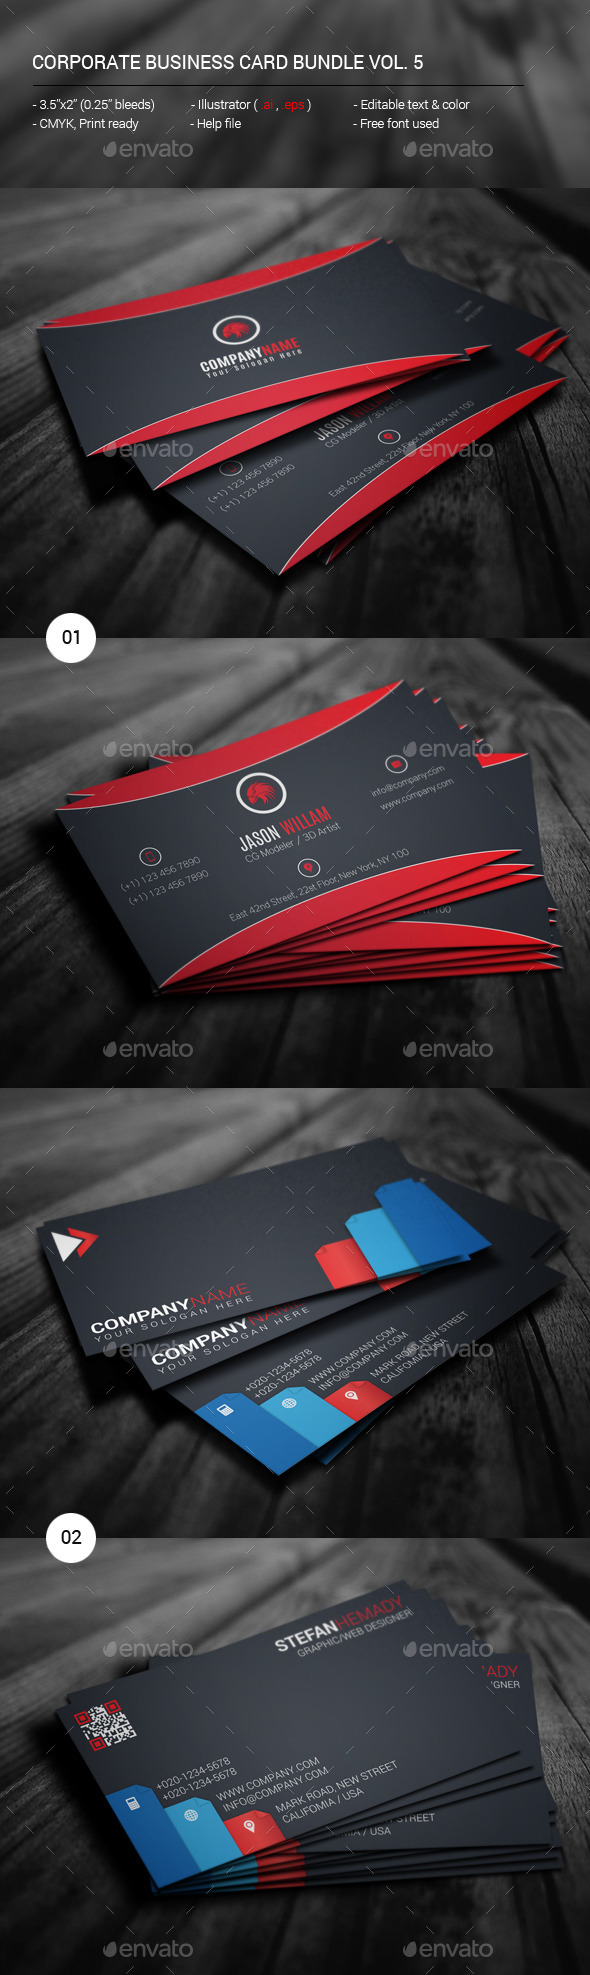 Corporate Business Card Bundle Vol. 5 - Corporate Business Cards